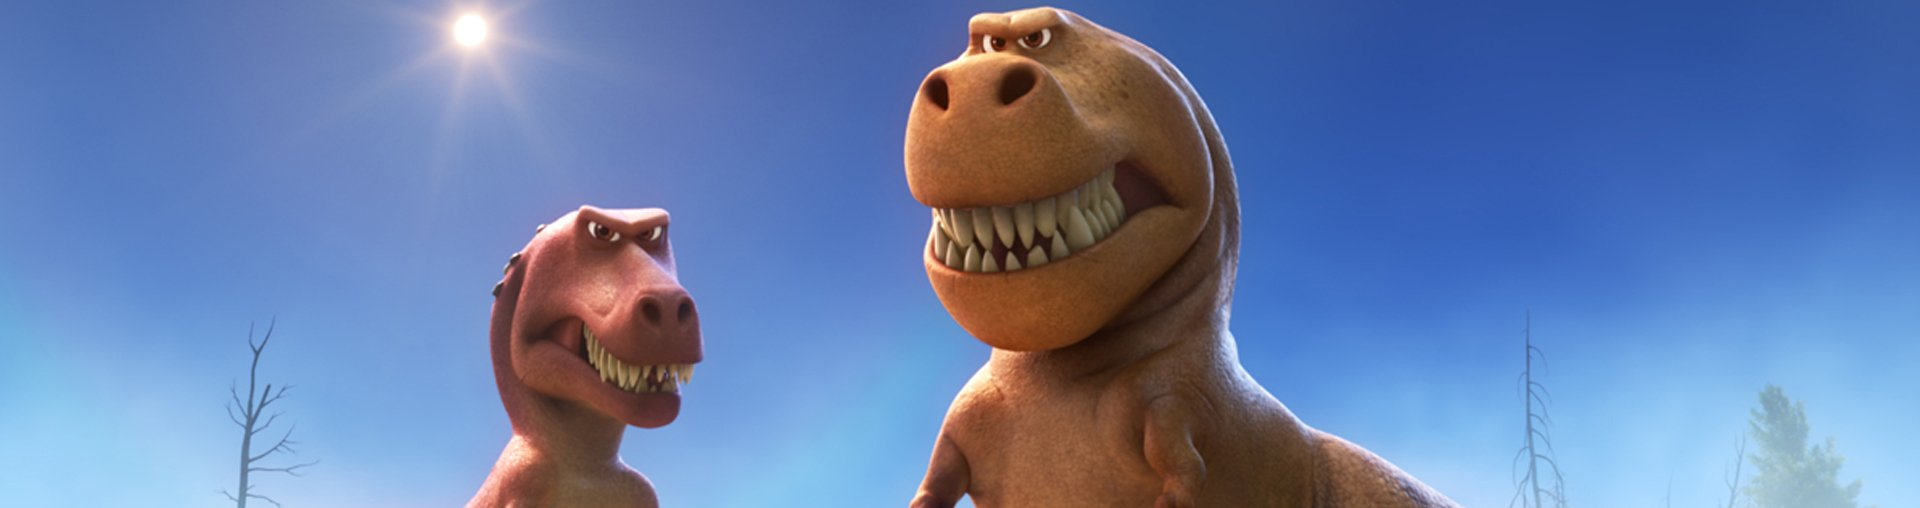 the_good_dinosaur_hampa_studio_blog